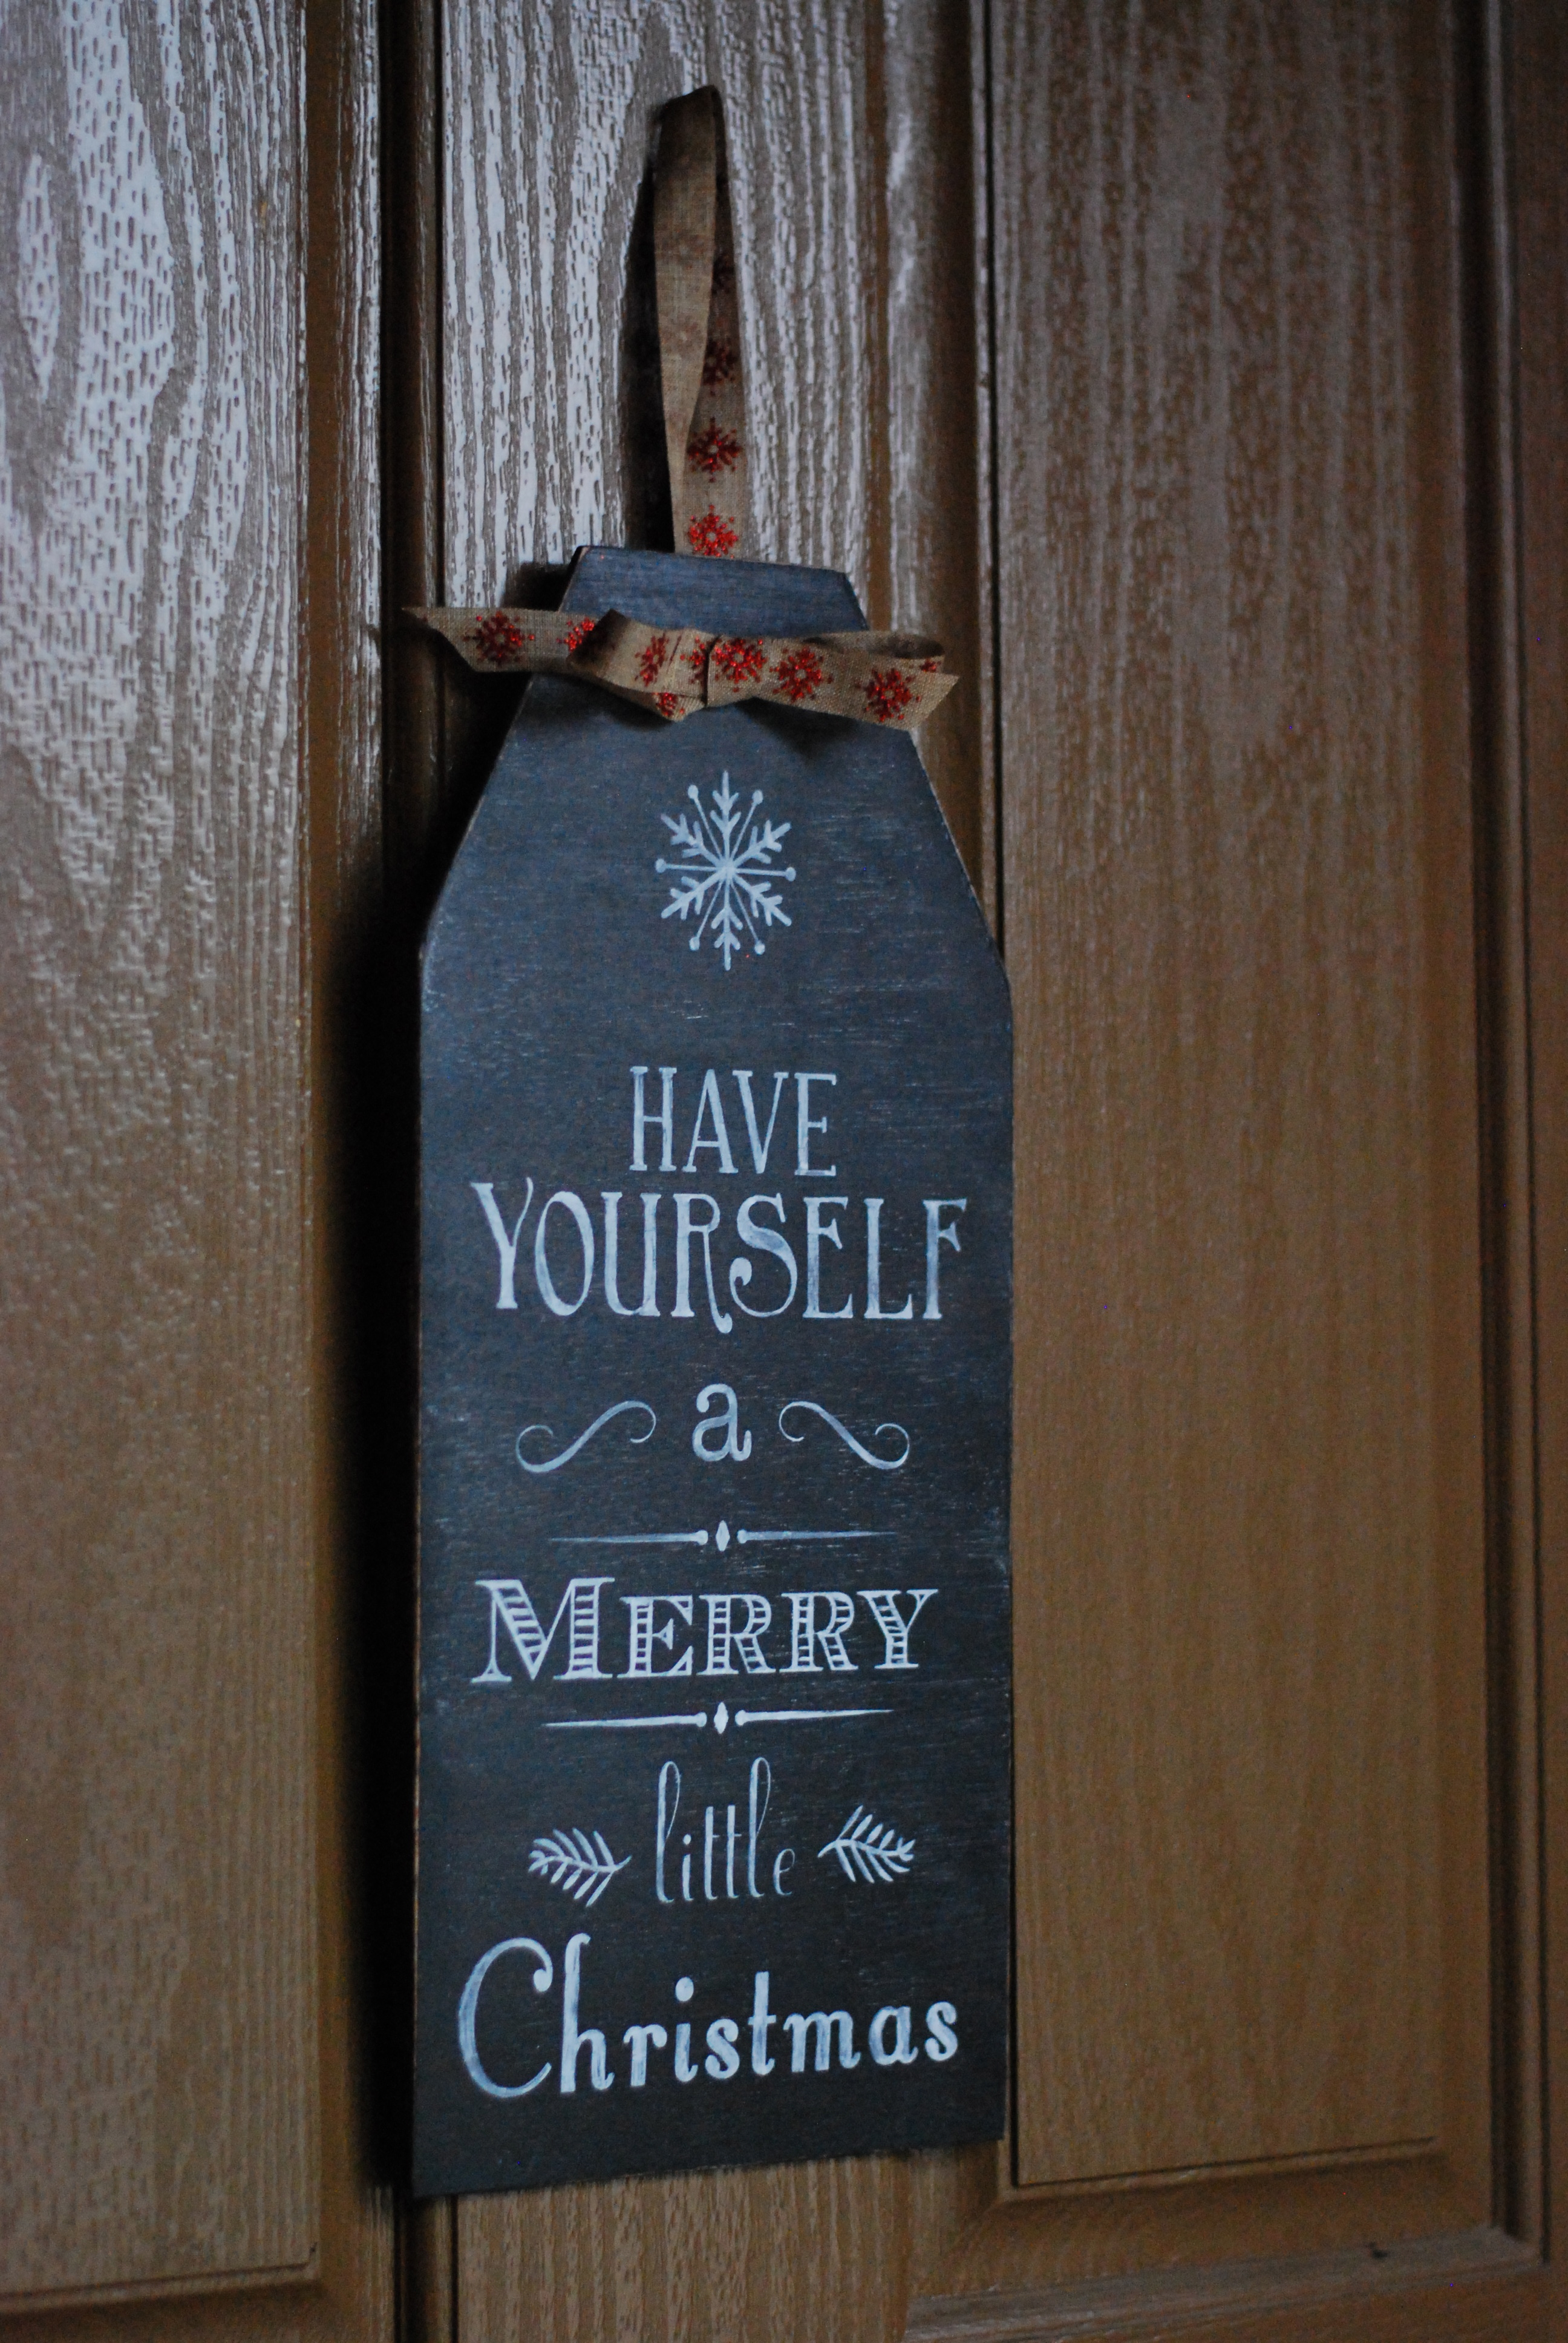 Have Yourself A Merry Little Christmas Chalkboard Sign DSC 0185 So I Brought Those Signs To The Party As My 5 Favorite Thing Friend Had Originally